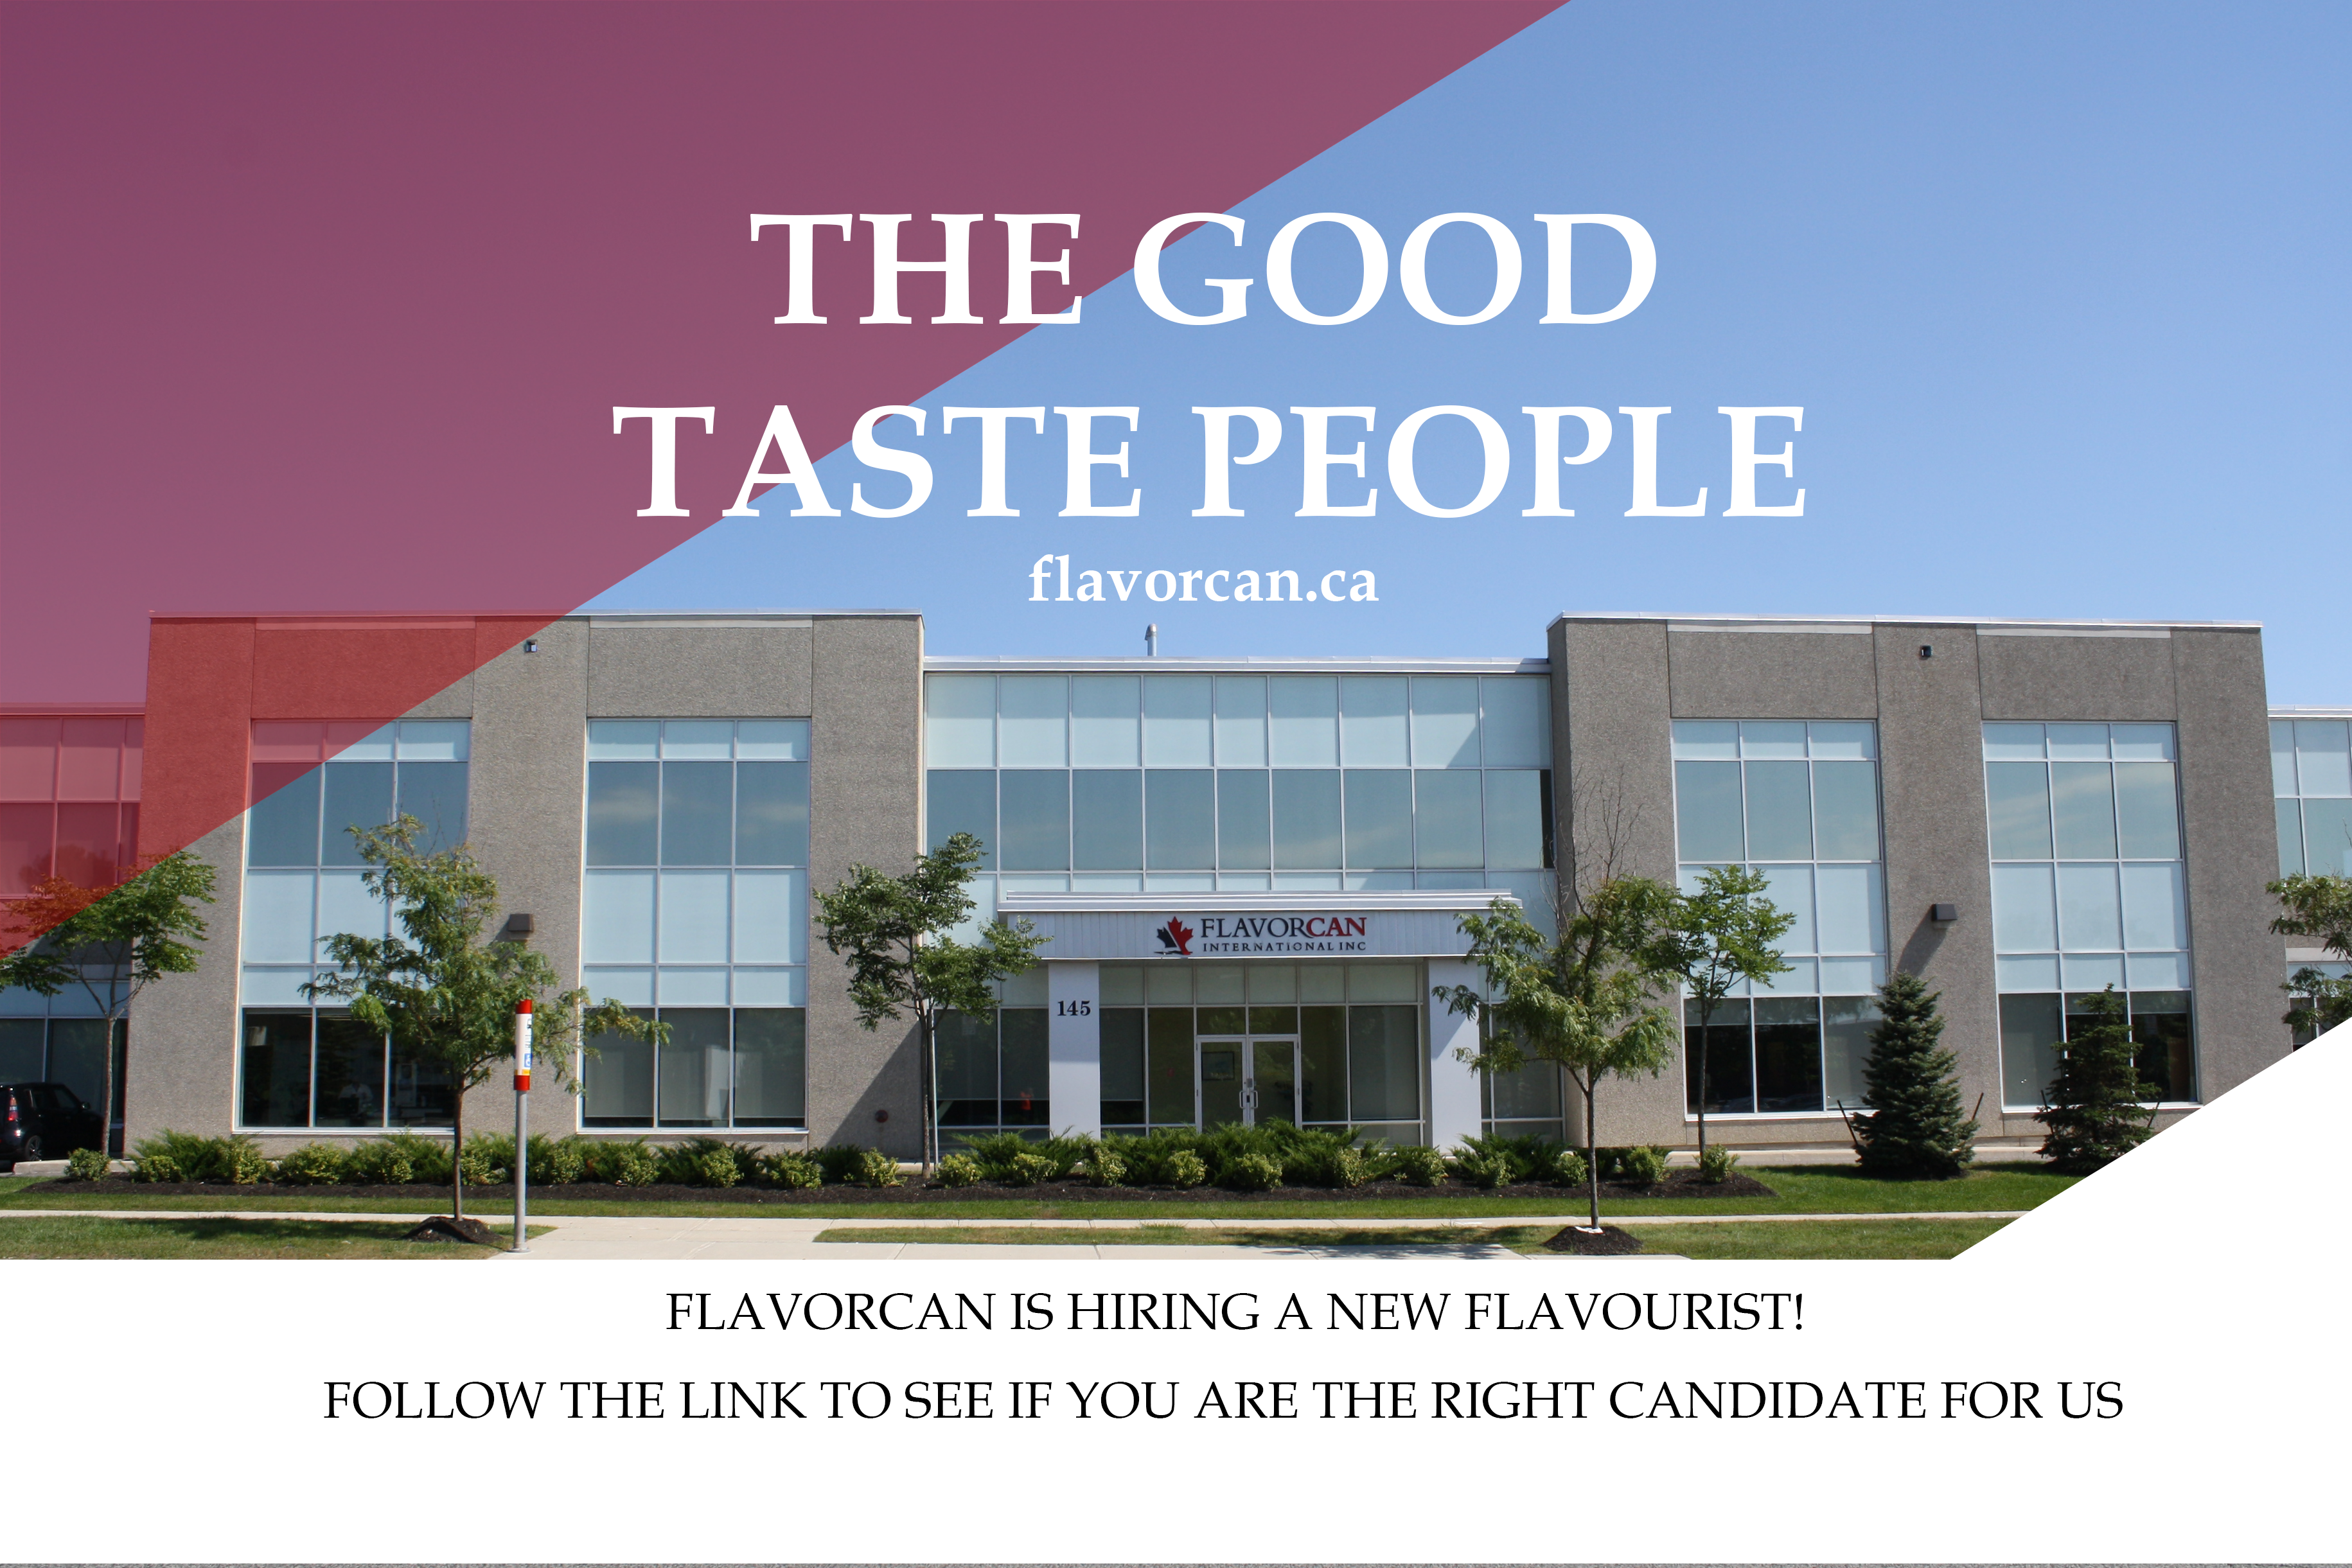 Flavorcan is Hiring a New Flavourist!